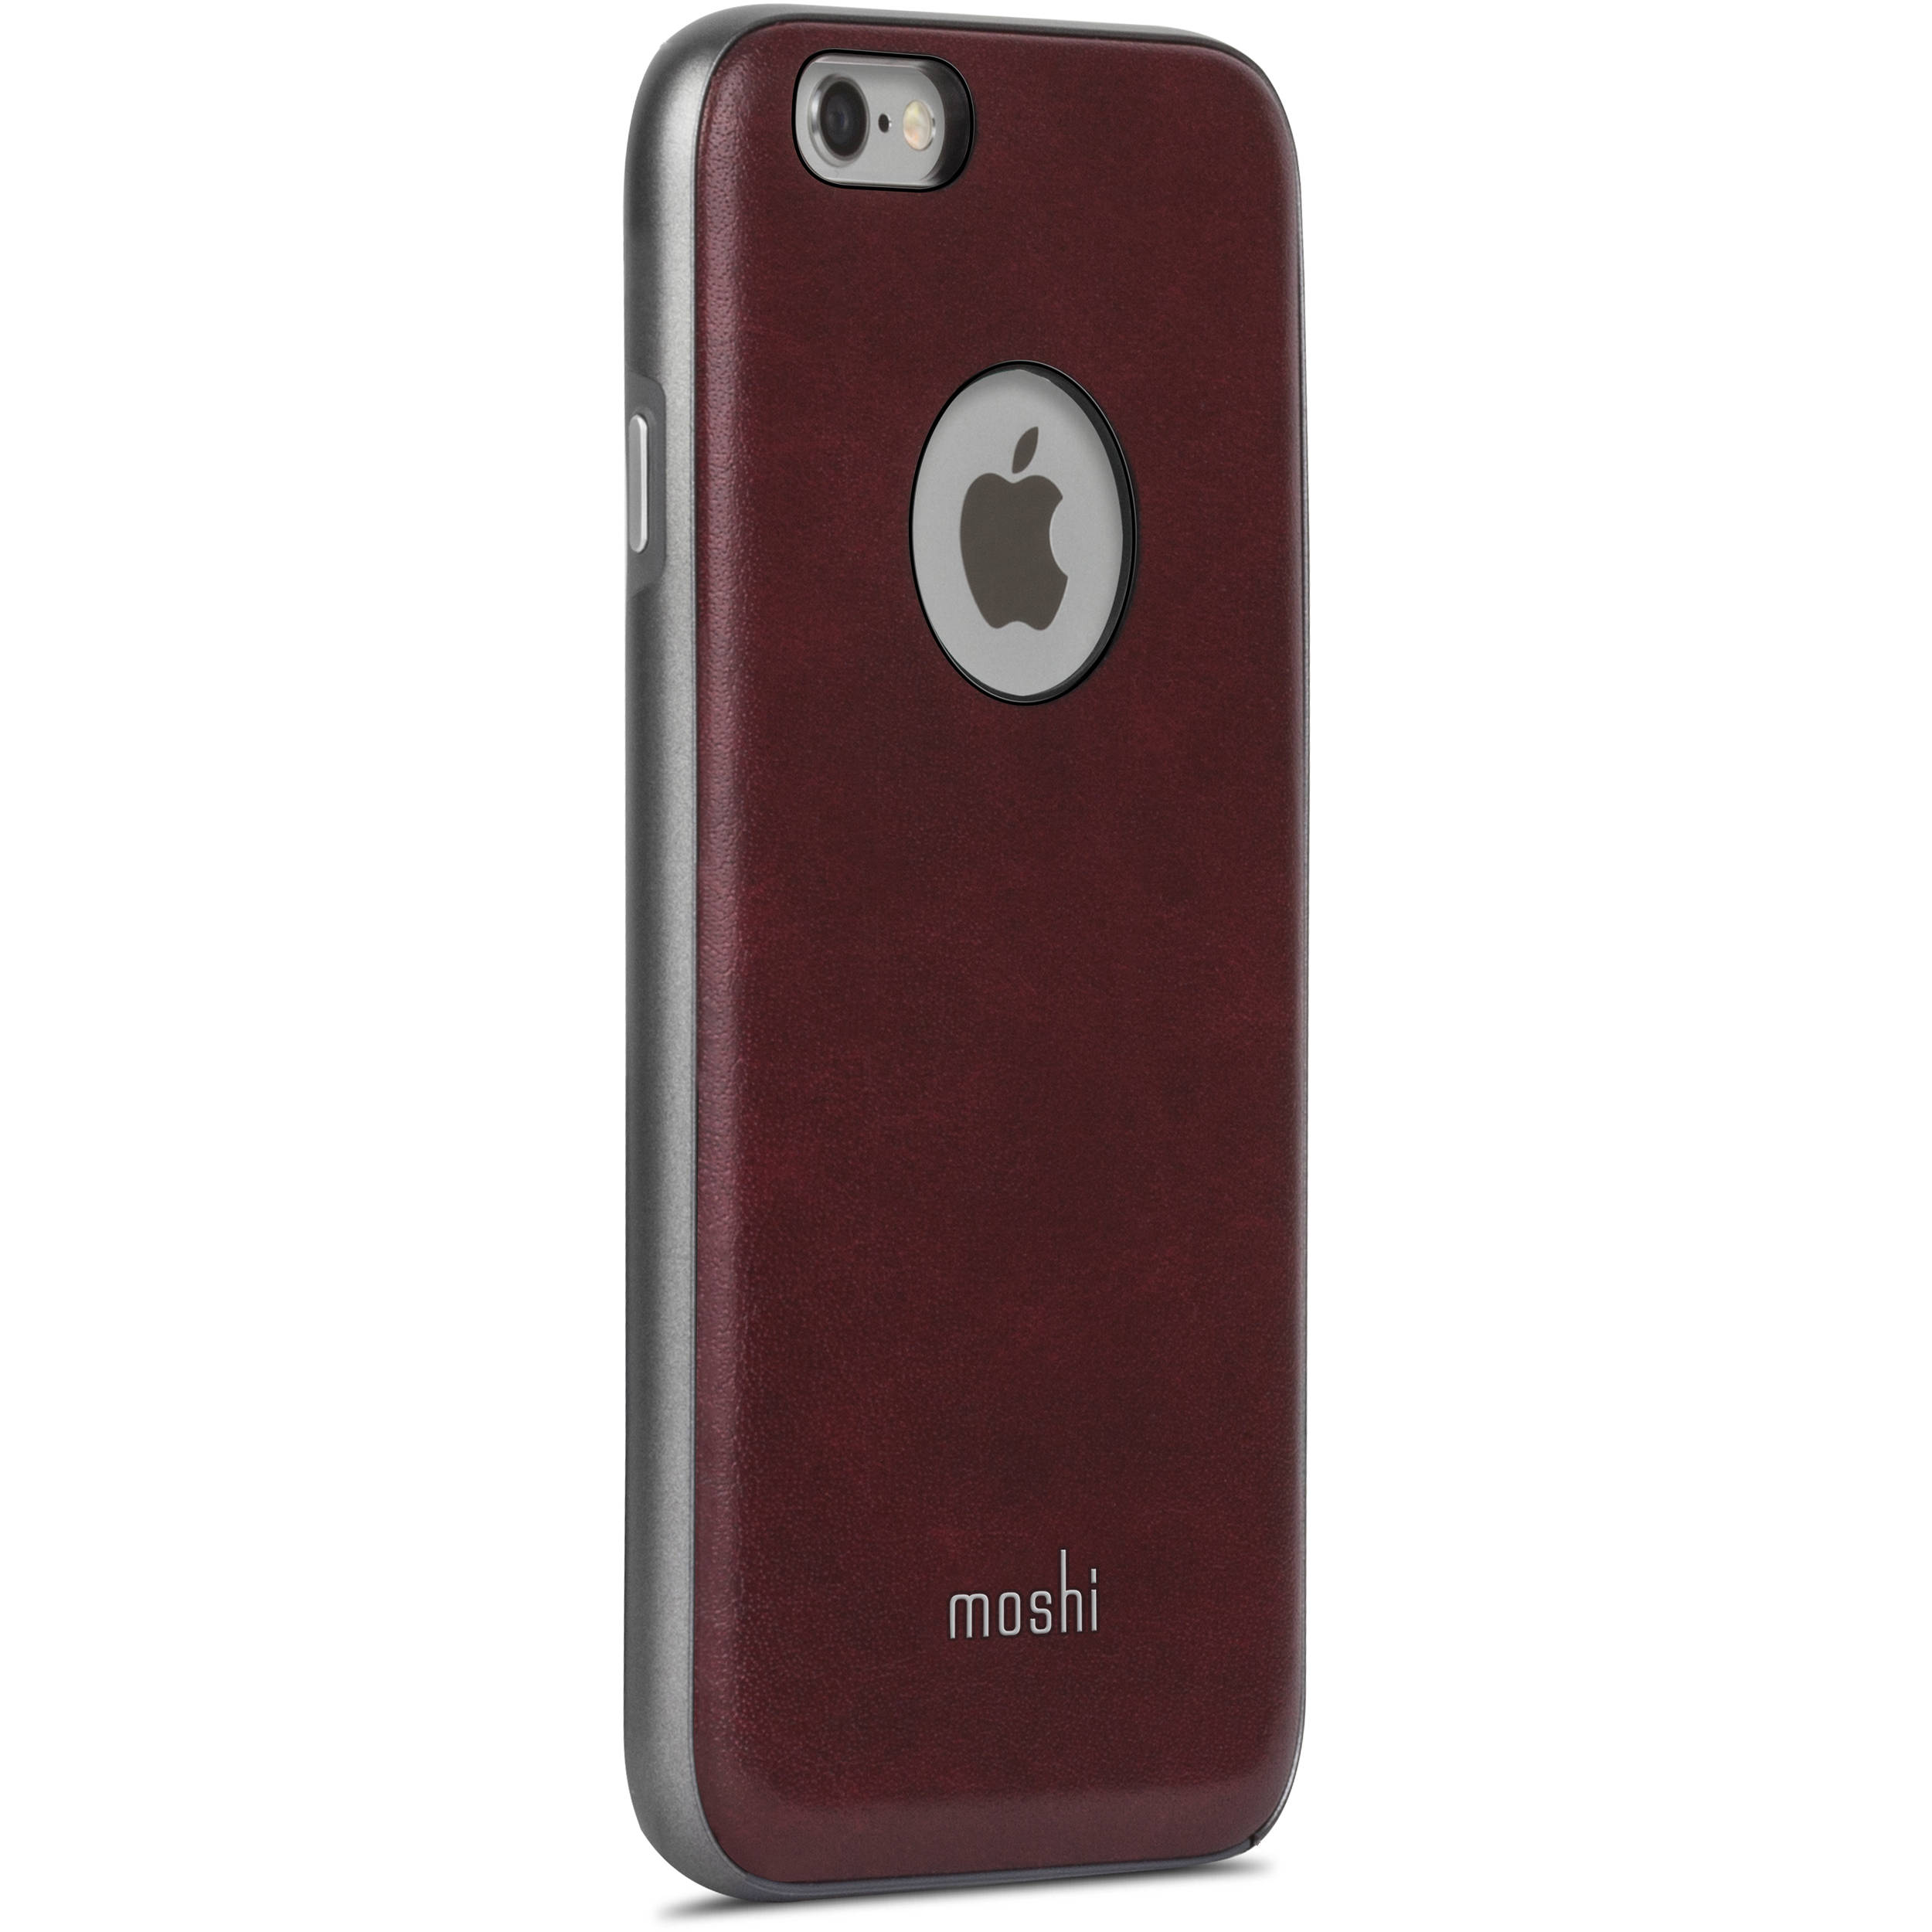 moshi iphone case moshi napa for iphone 6 6s burgundy 99mo079321 b amp h 7367